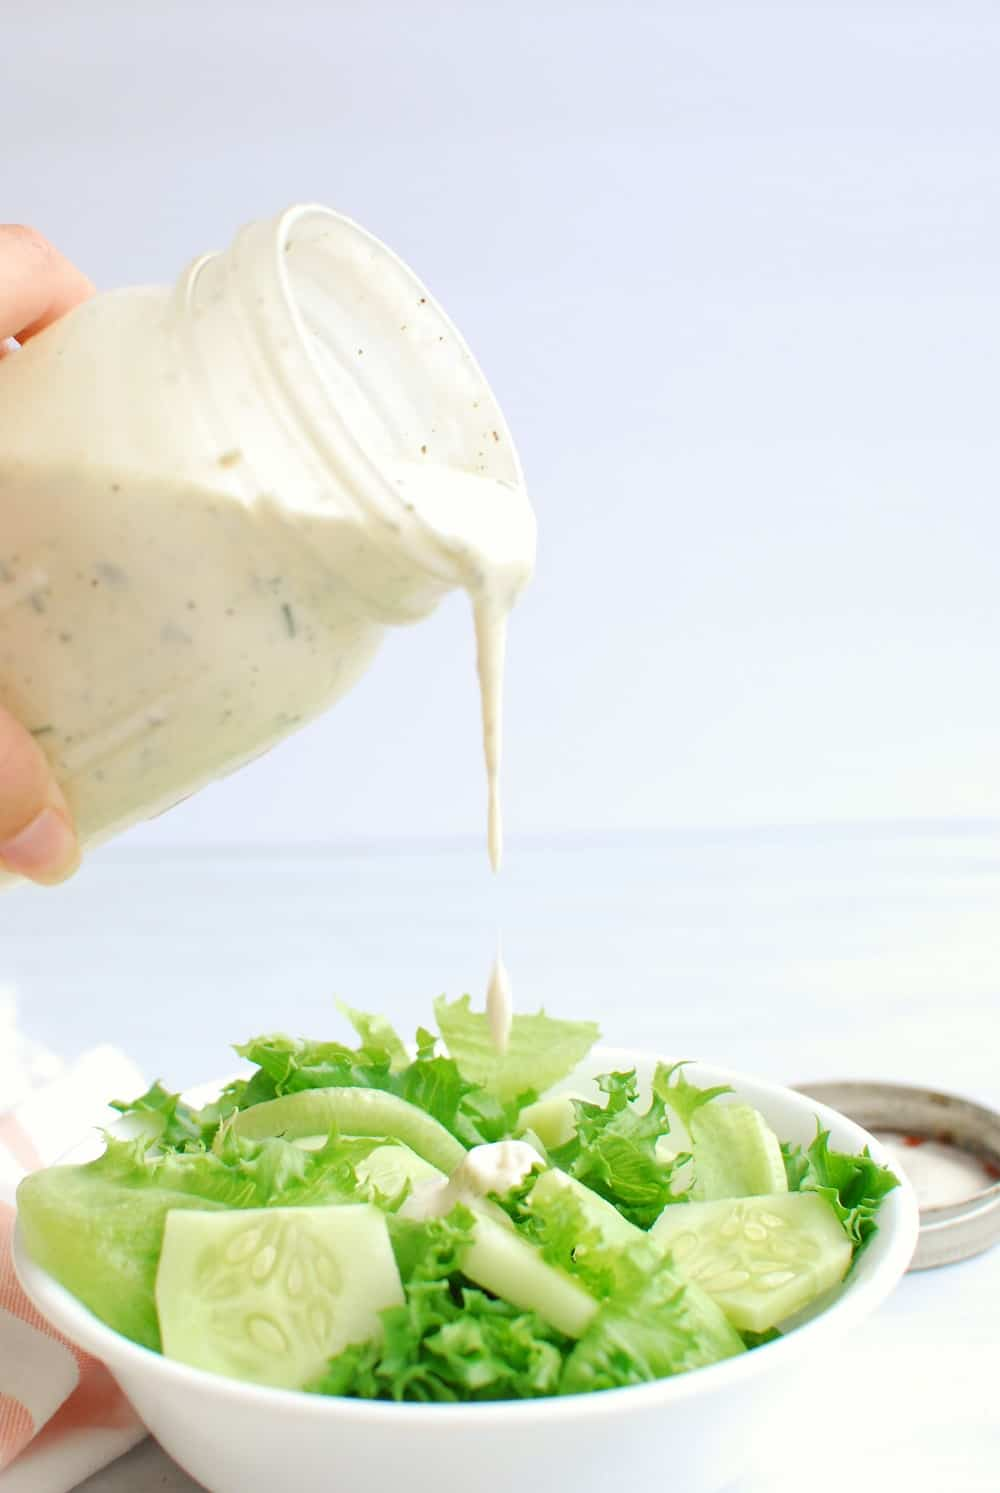 Pouring dressing over a salad with greens and cucumbers